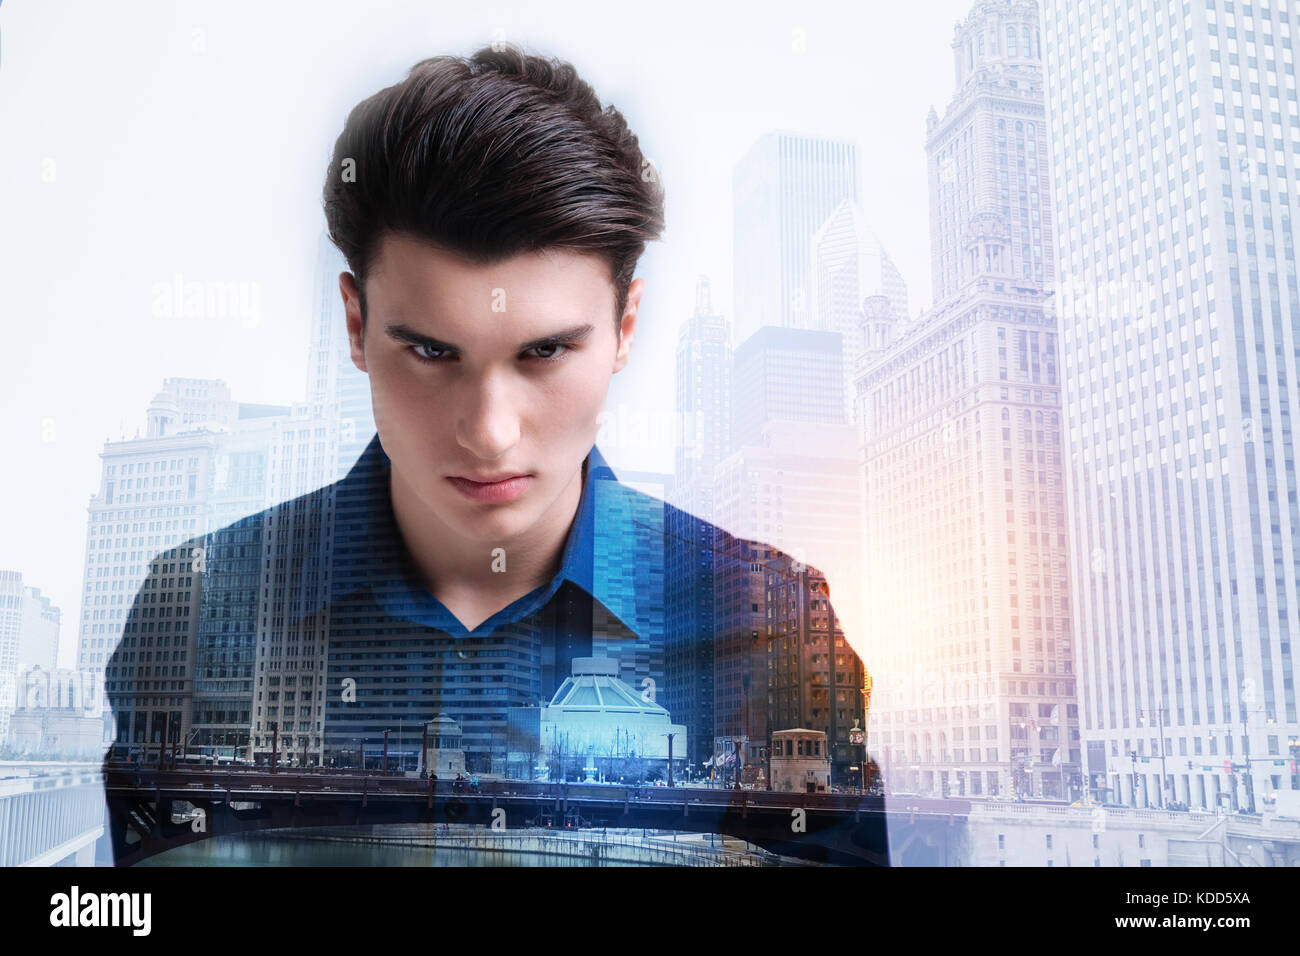 Furious teenager looking at you with negativity Stock Photo